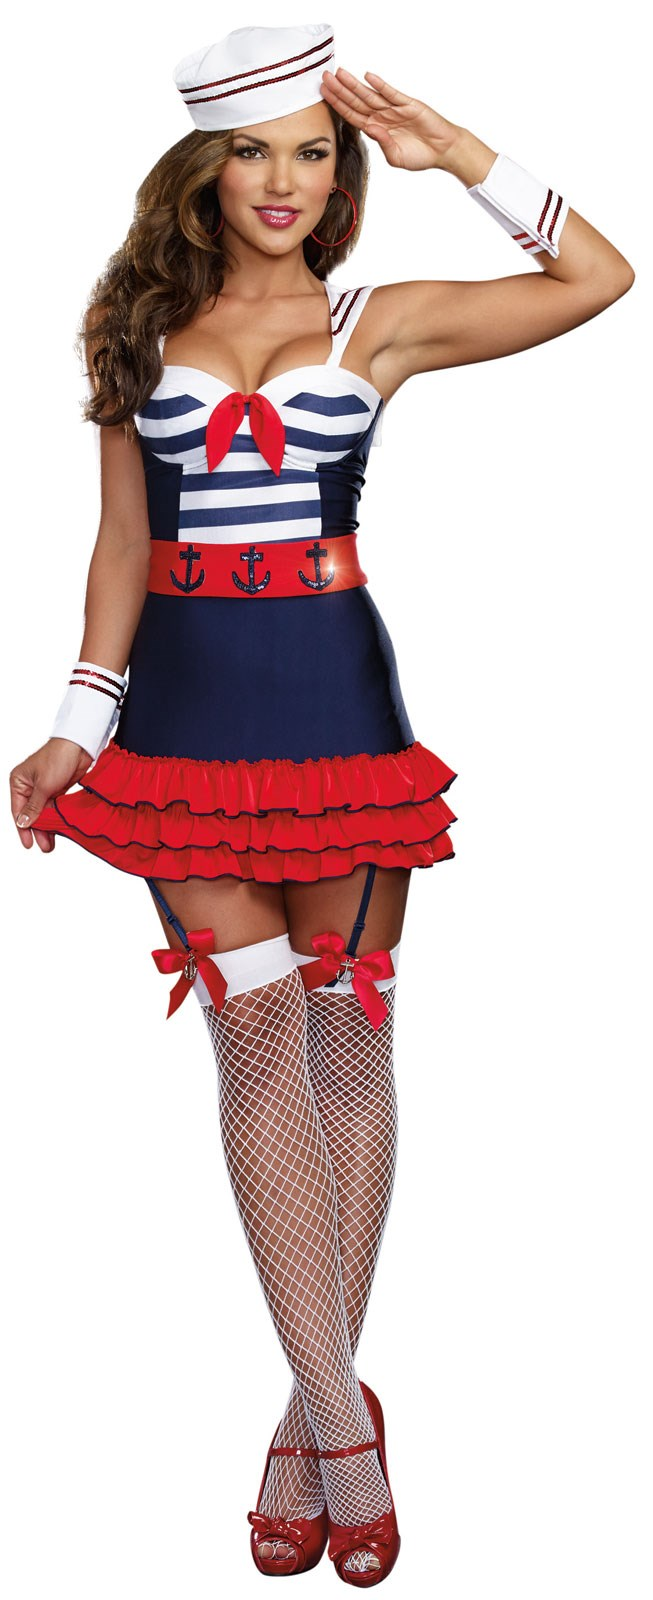 Sailors Delight Costume For Adults